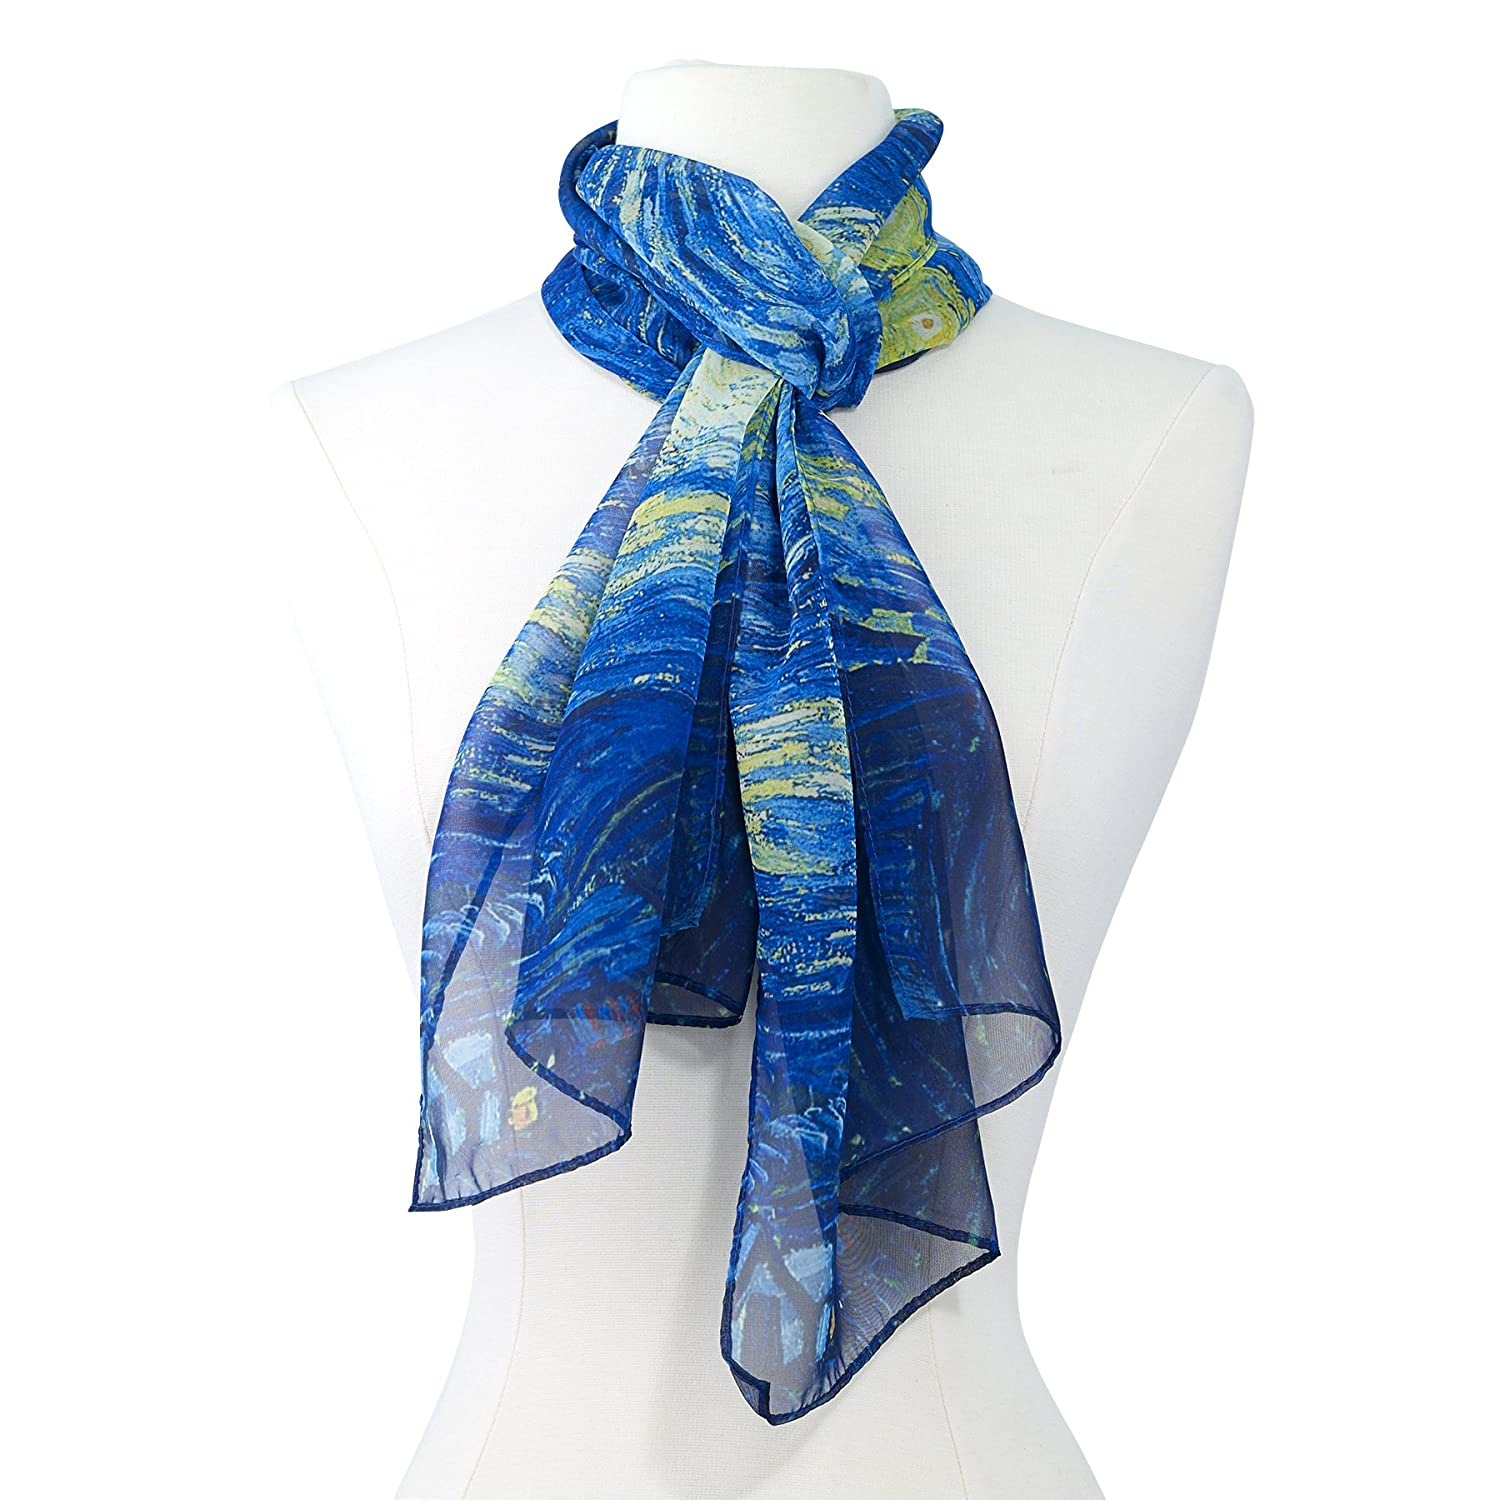 Van Gogh Starry Night Scarf GALLERIA ENTERPRISES INC. 840109